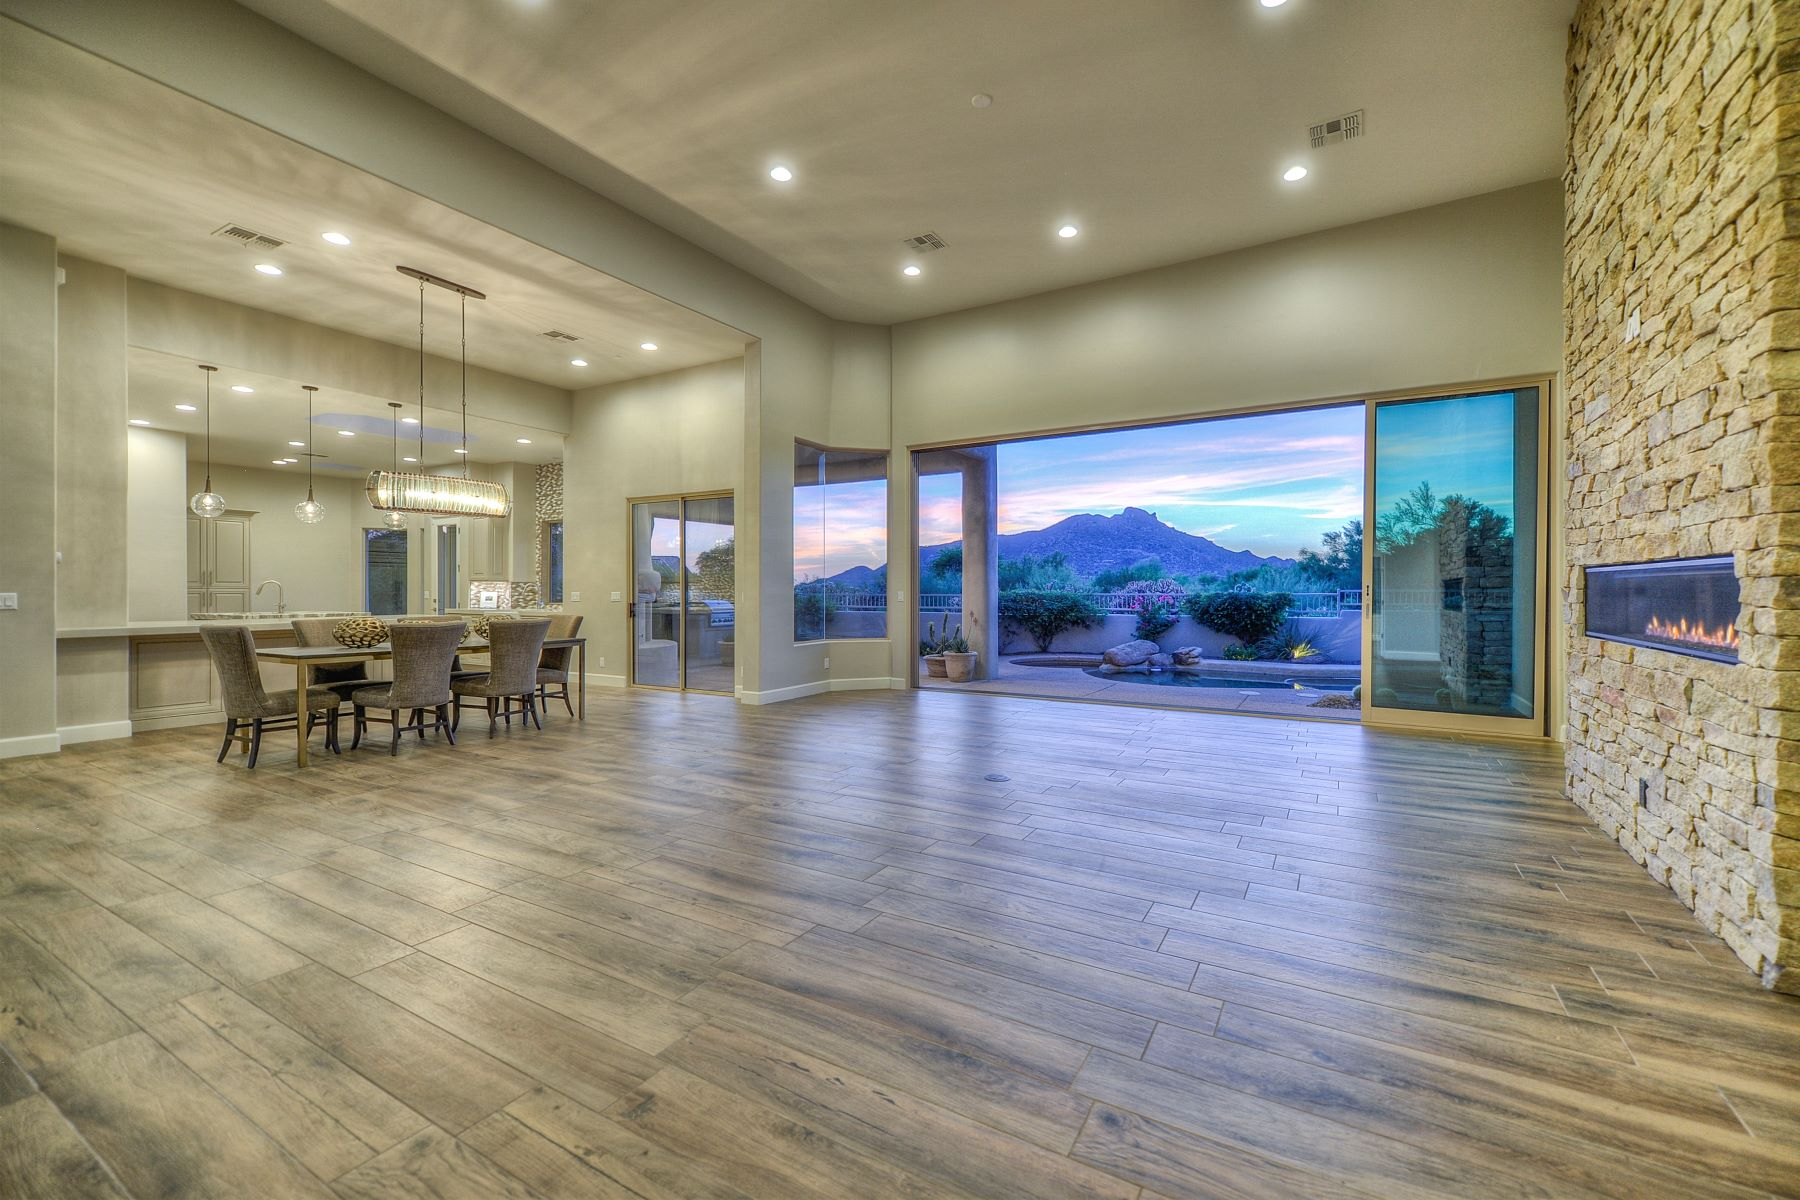 Single Family Home for Sale at Fully renovated custom home with spectacular views 3072 E Ironwood Rd Carefree, Arizona, 85377 United States